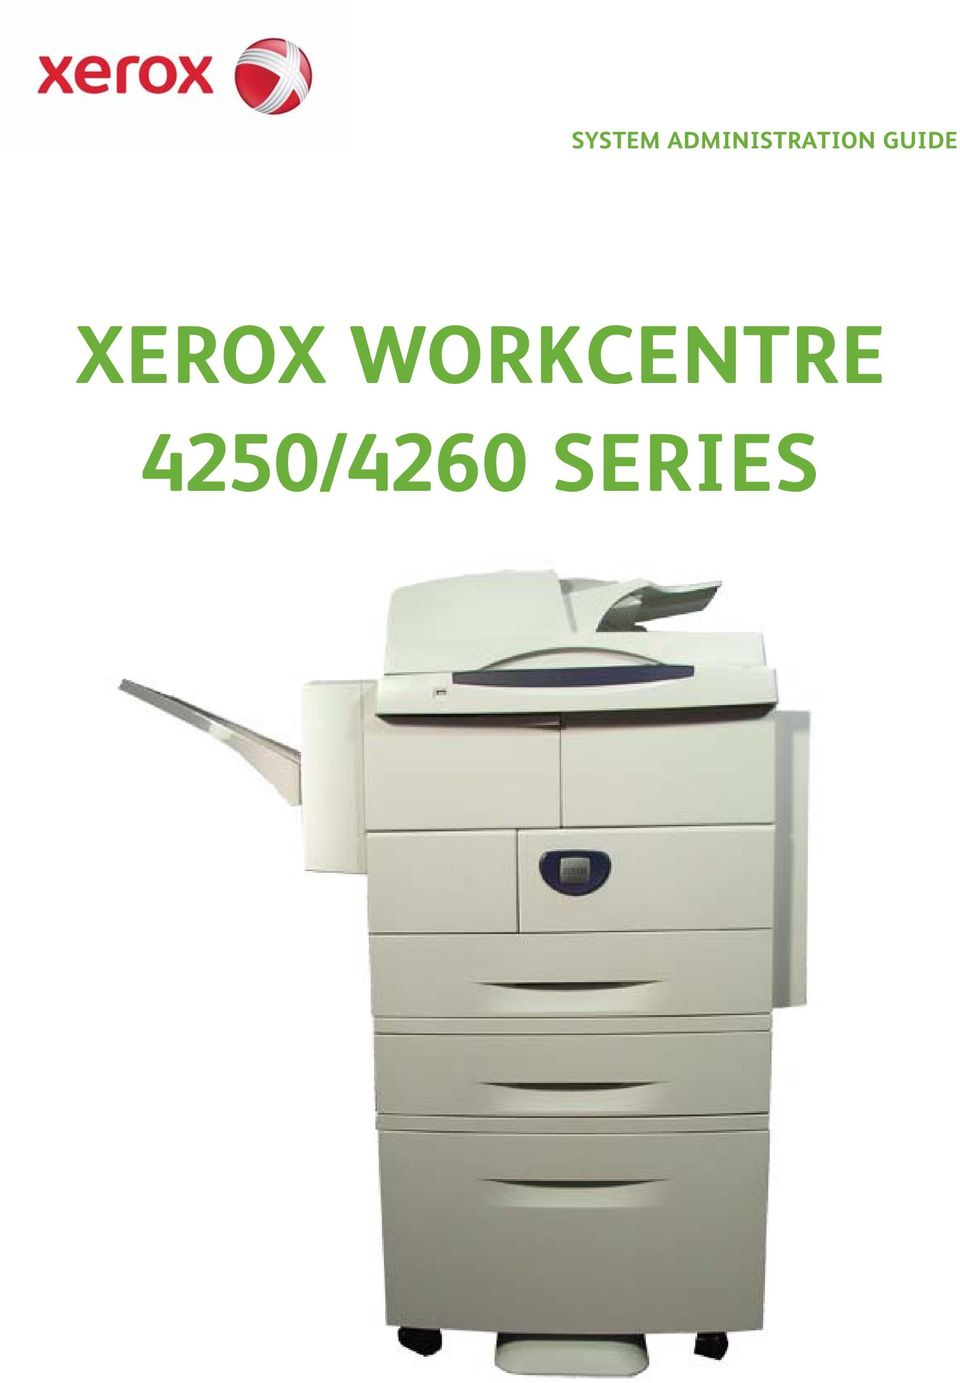 Xerox Workcentre 5755 Firmware Upgrade